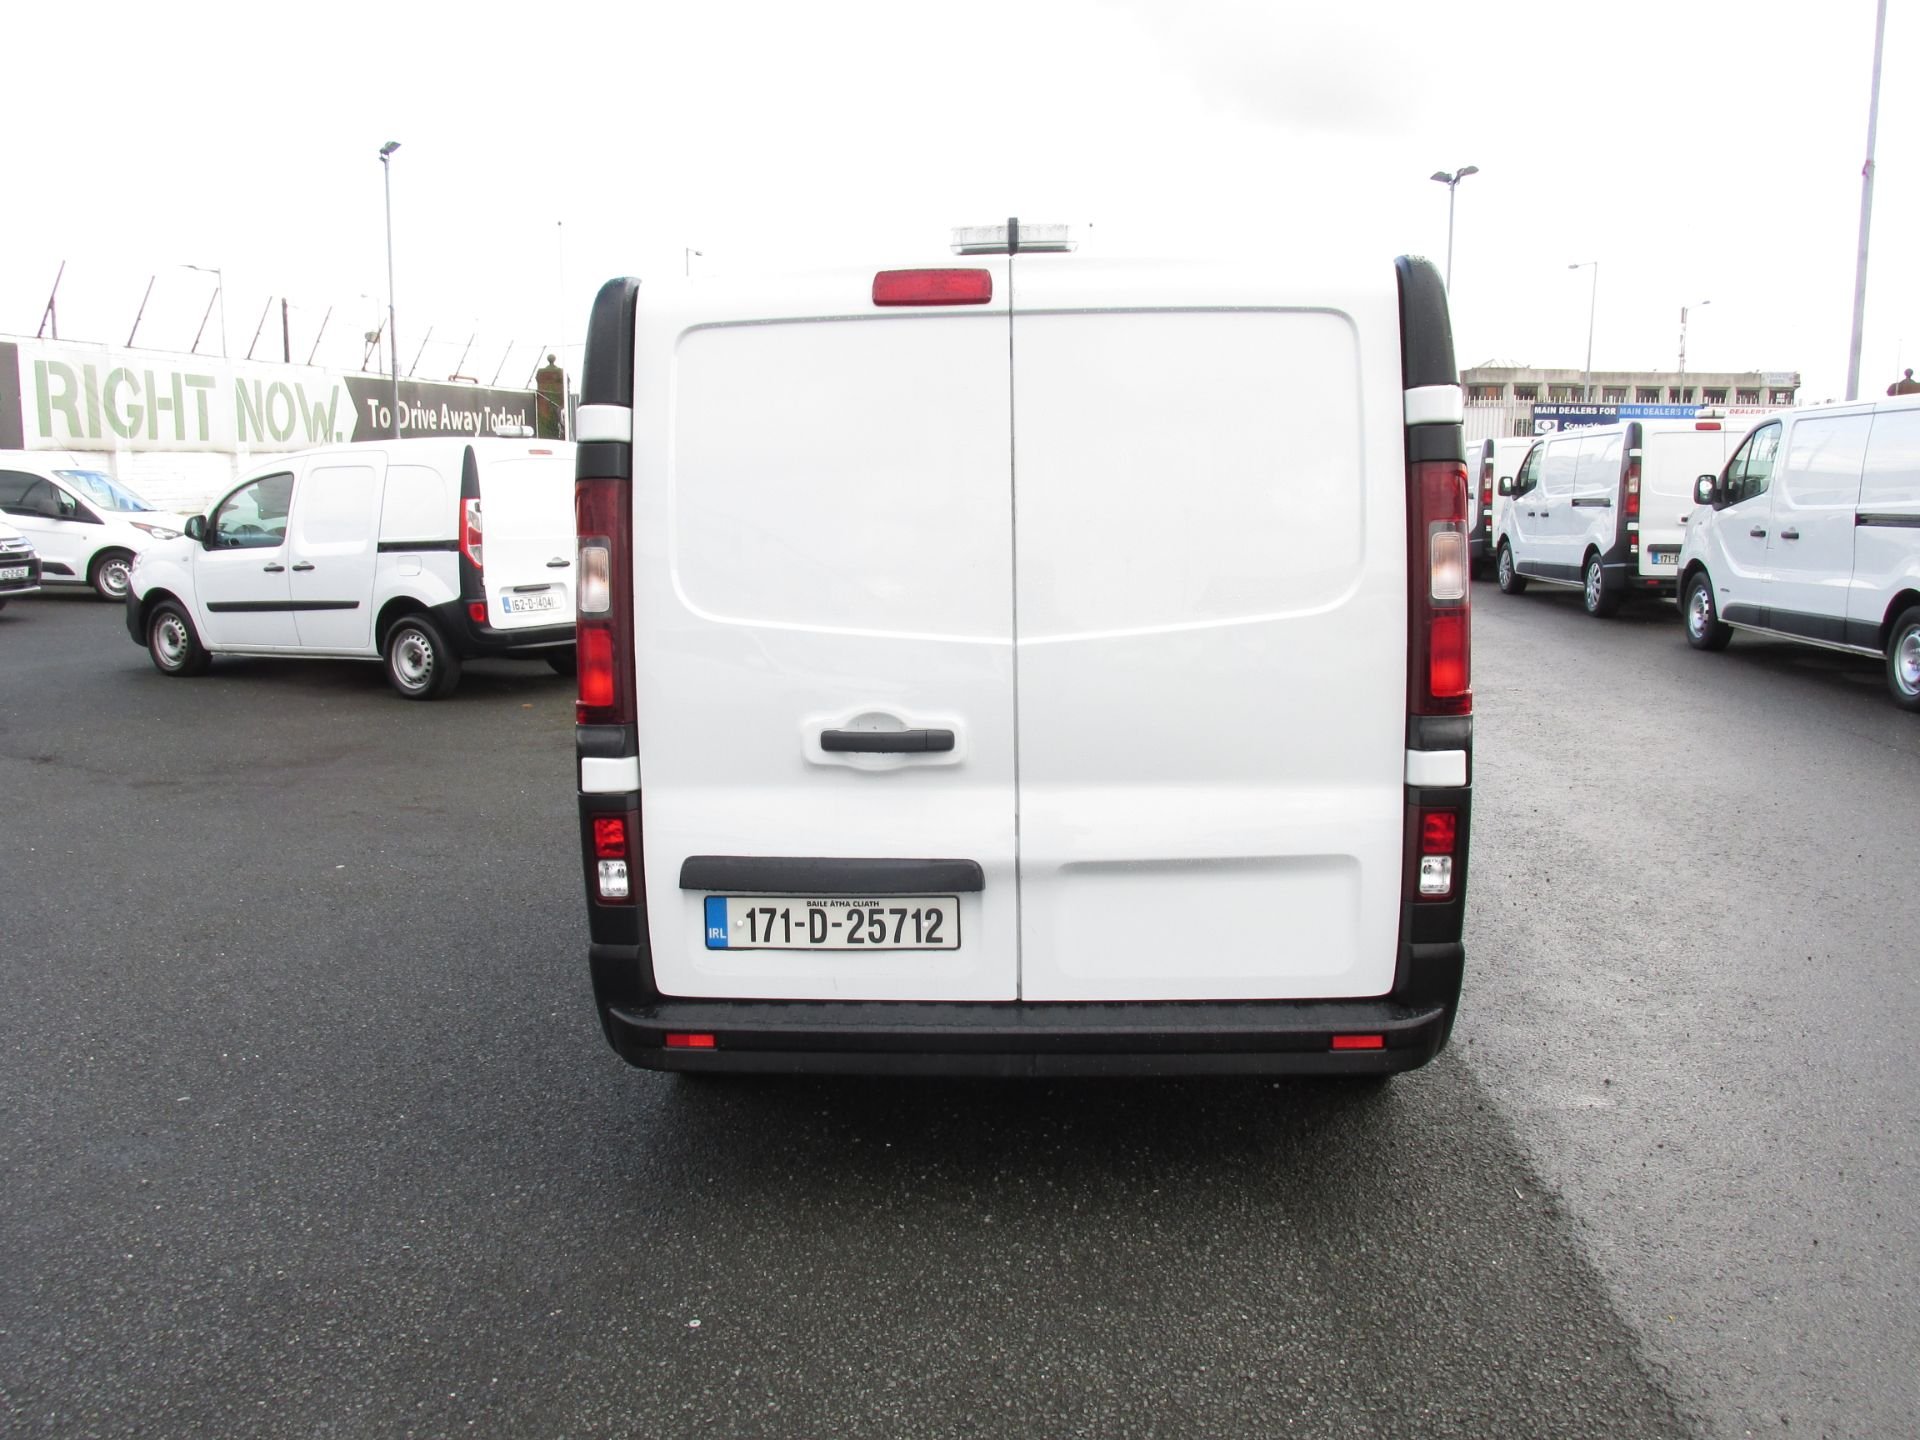 2017 Renault Trafic LL29 DCI 120 Business 3DR (171D25712) Image 6